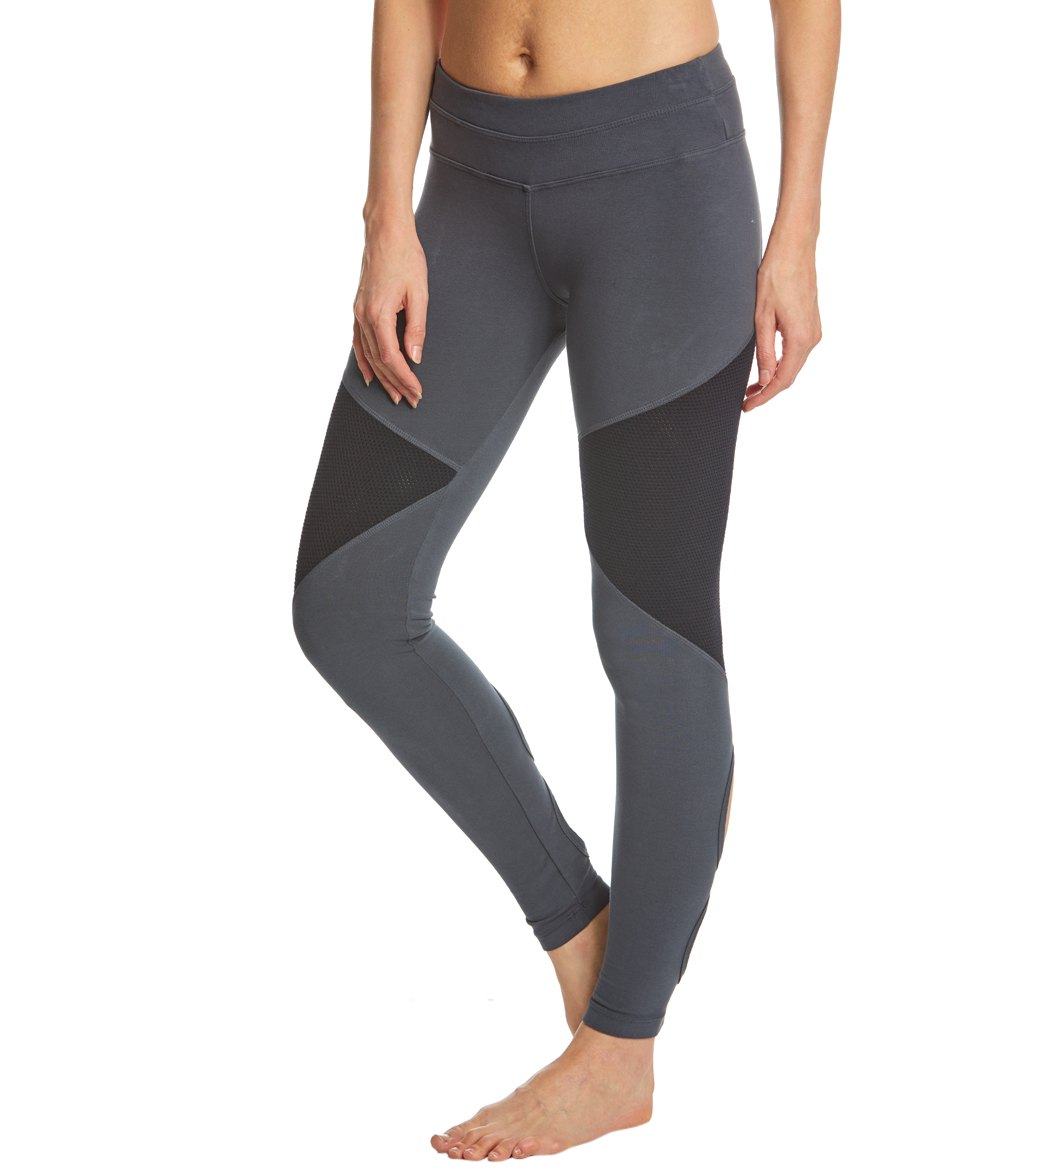 7fdbb5a722e1c Hard Tail Low Rise Double Loop Cotton Yoga Leggings at YogaOutlet ...